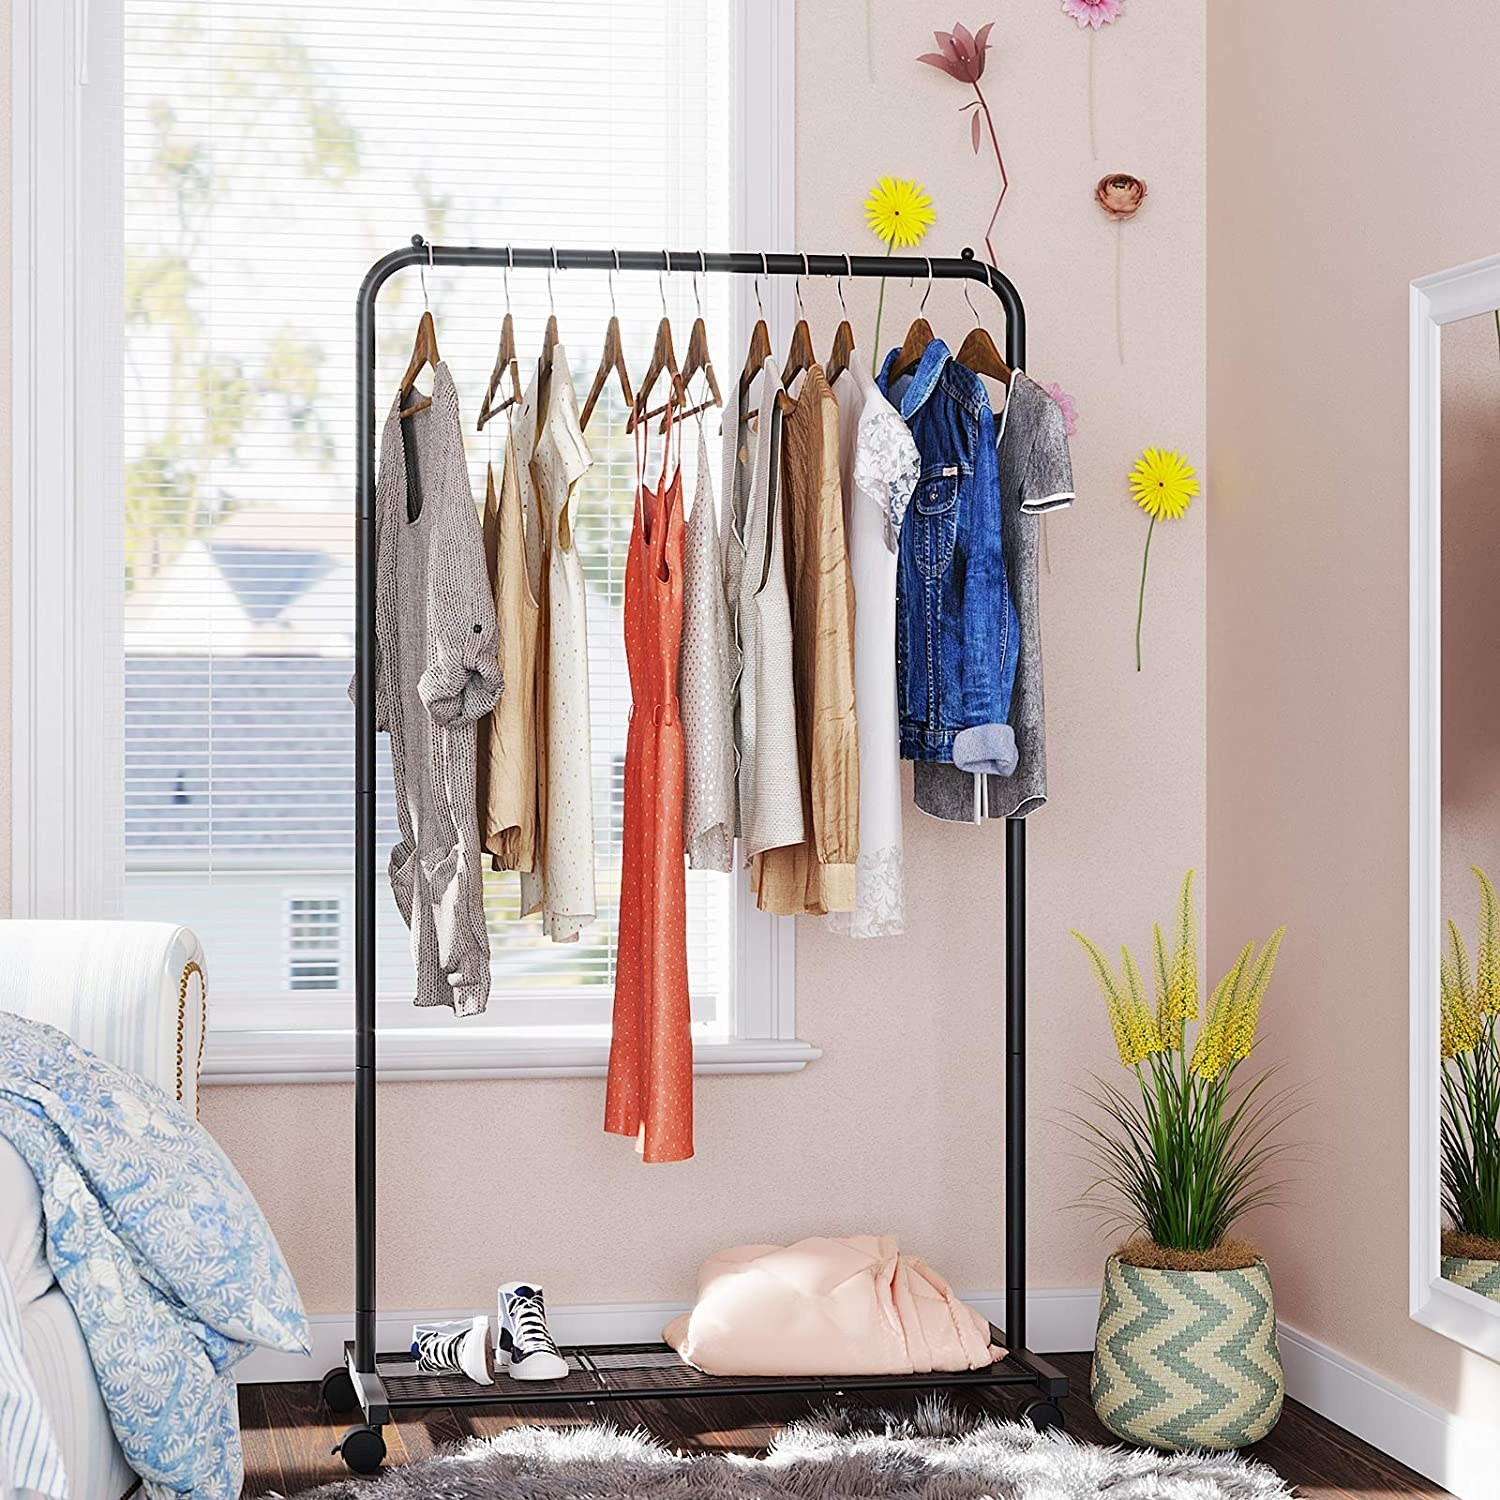 The garment rack filled with clothes in a bedroom